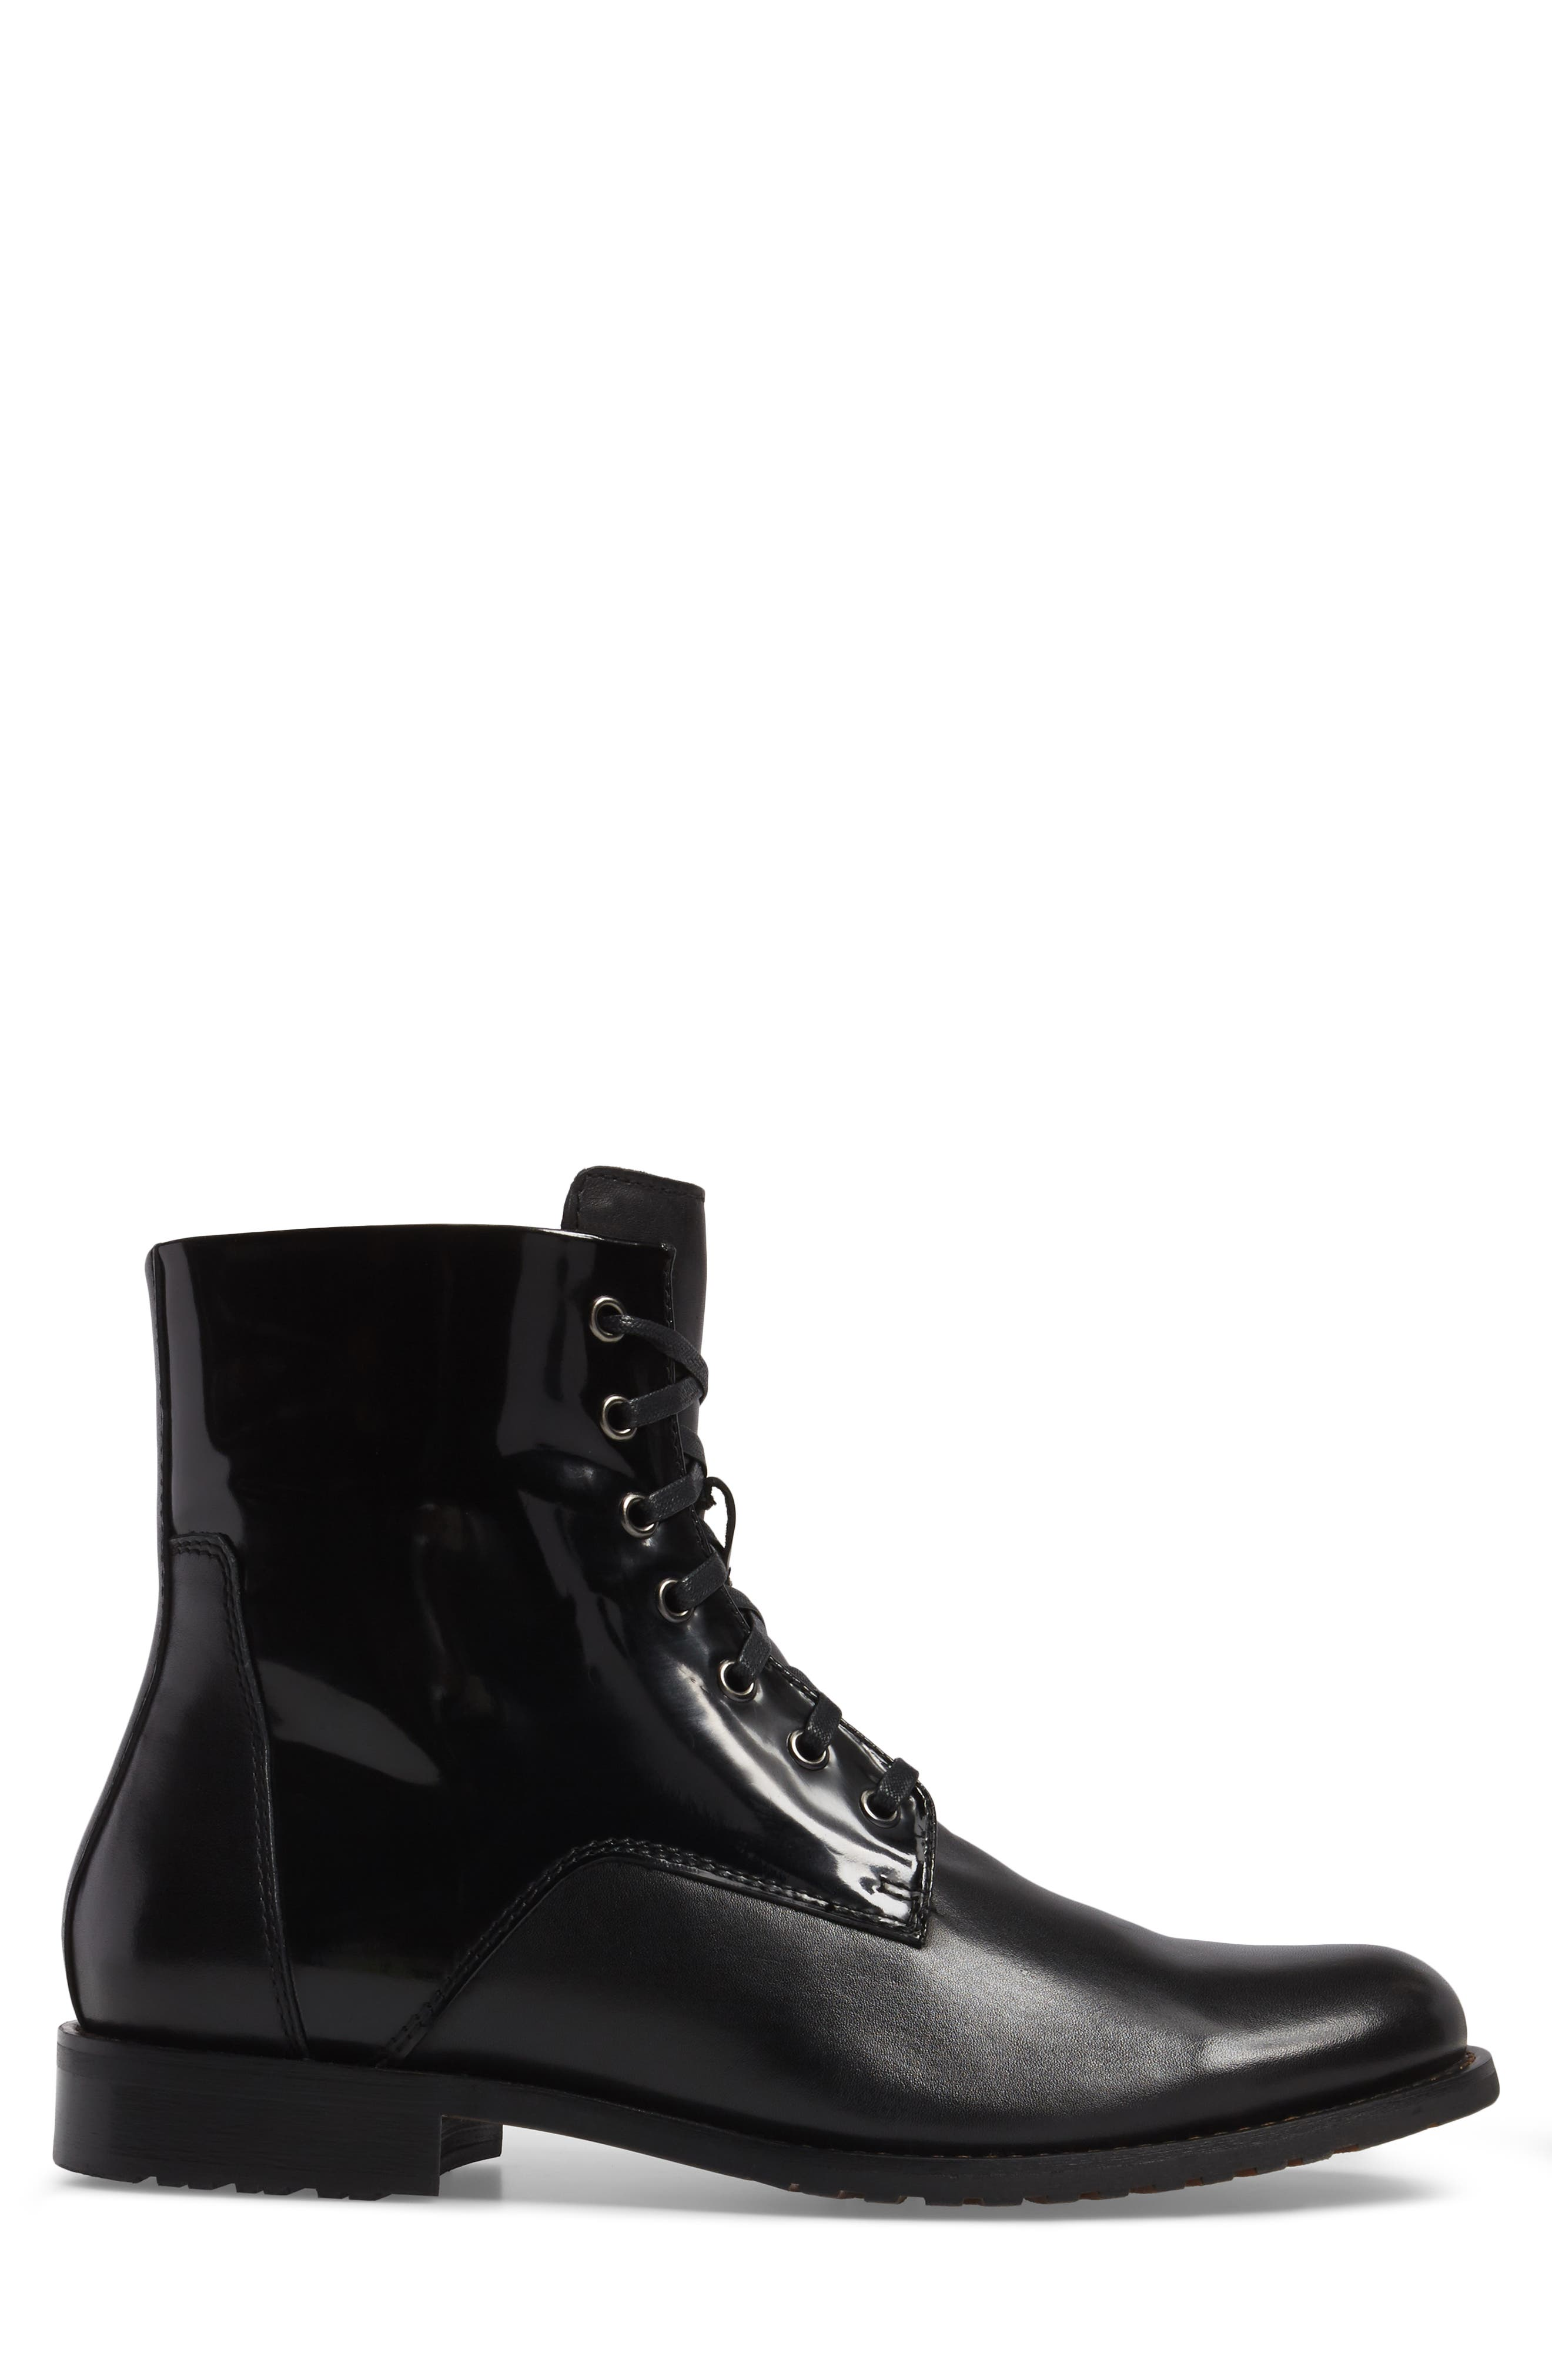 Athol Plain Toe Boot,                             Alternate thumbnail 3, color,                             001